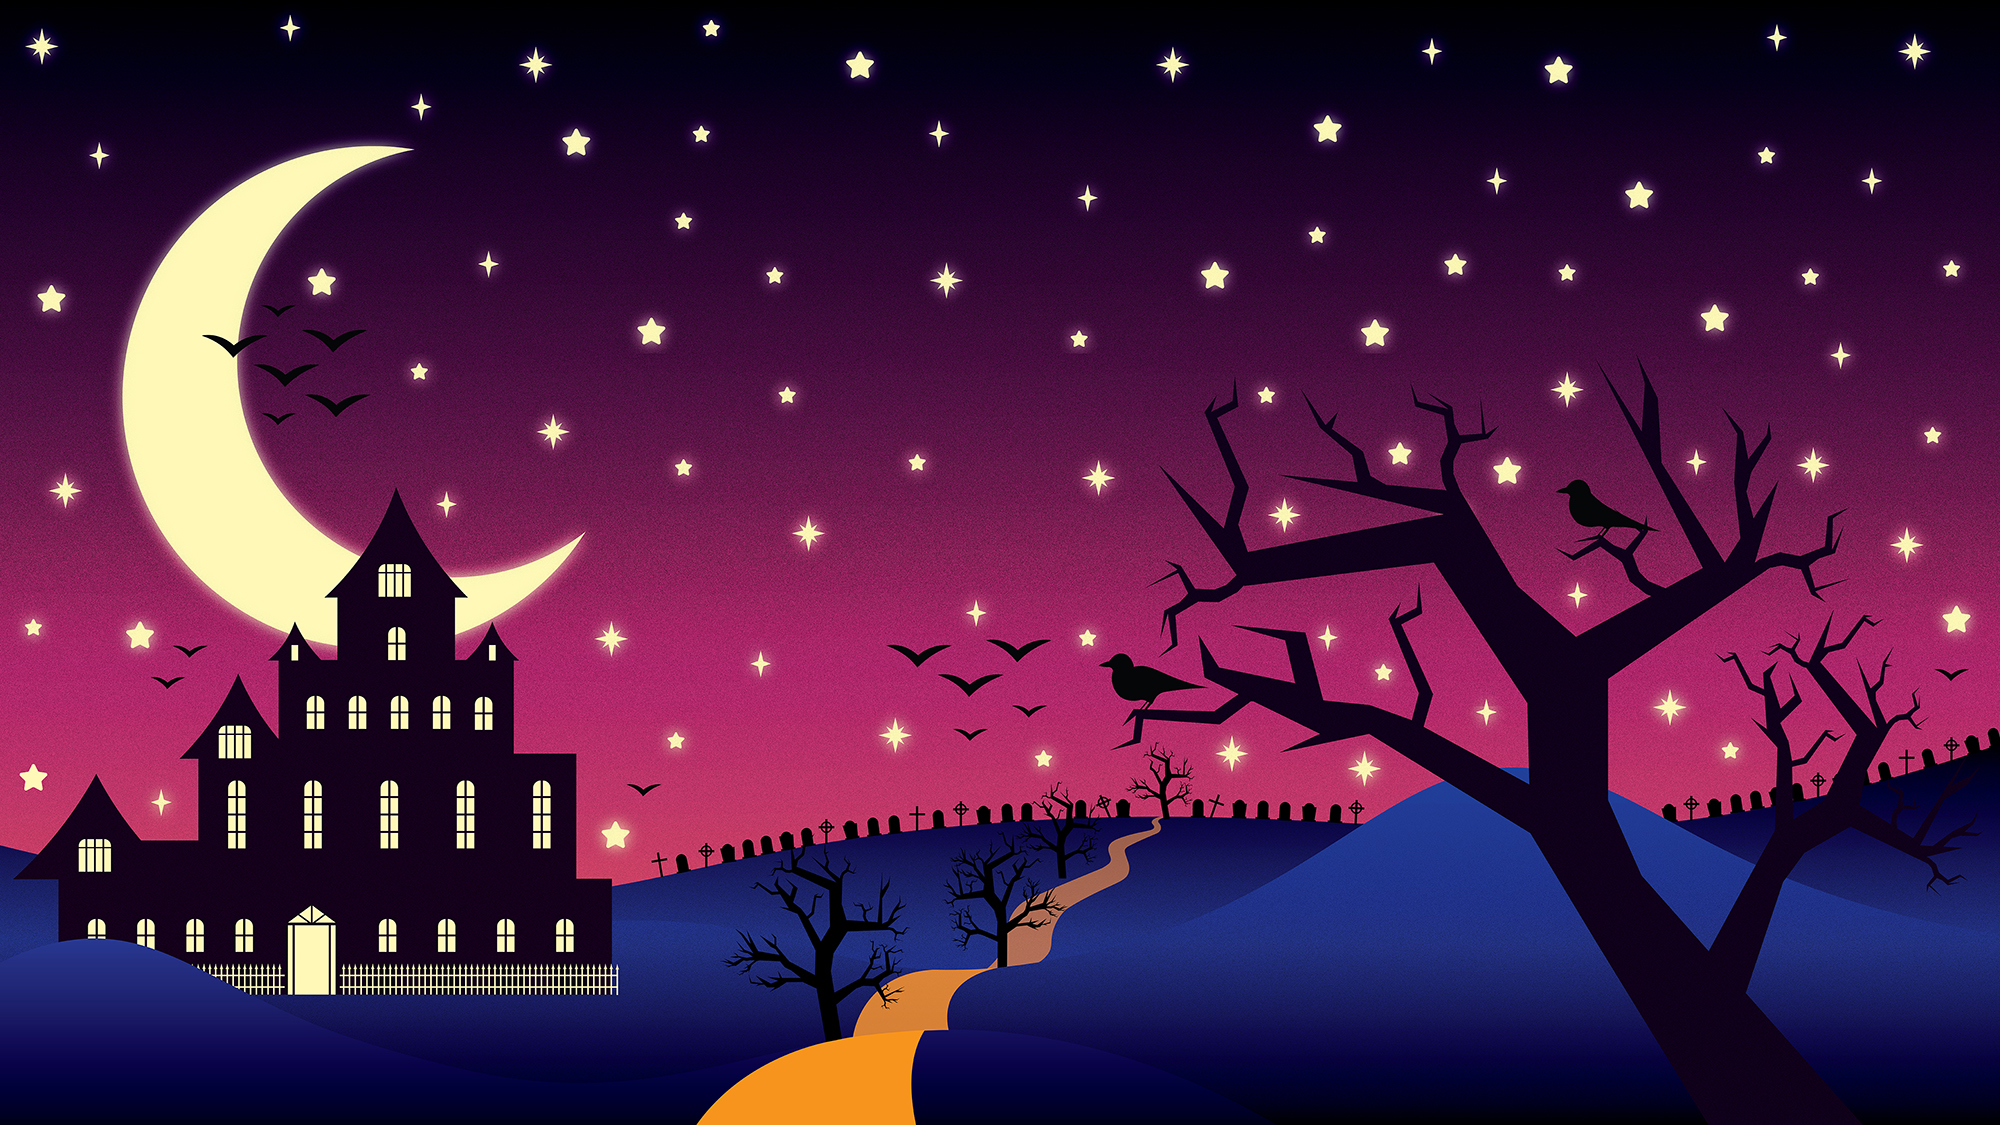 Halloween Picture with a spooky house, and stars